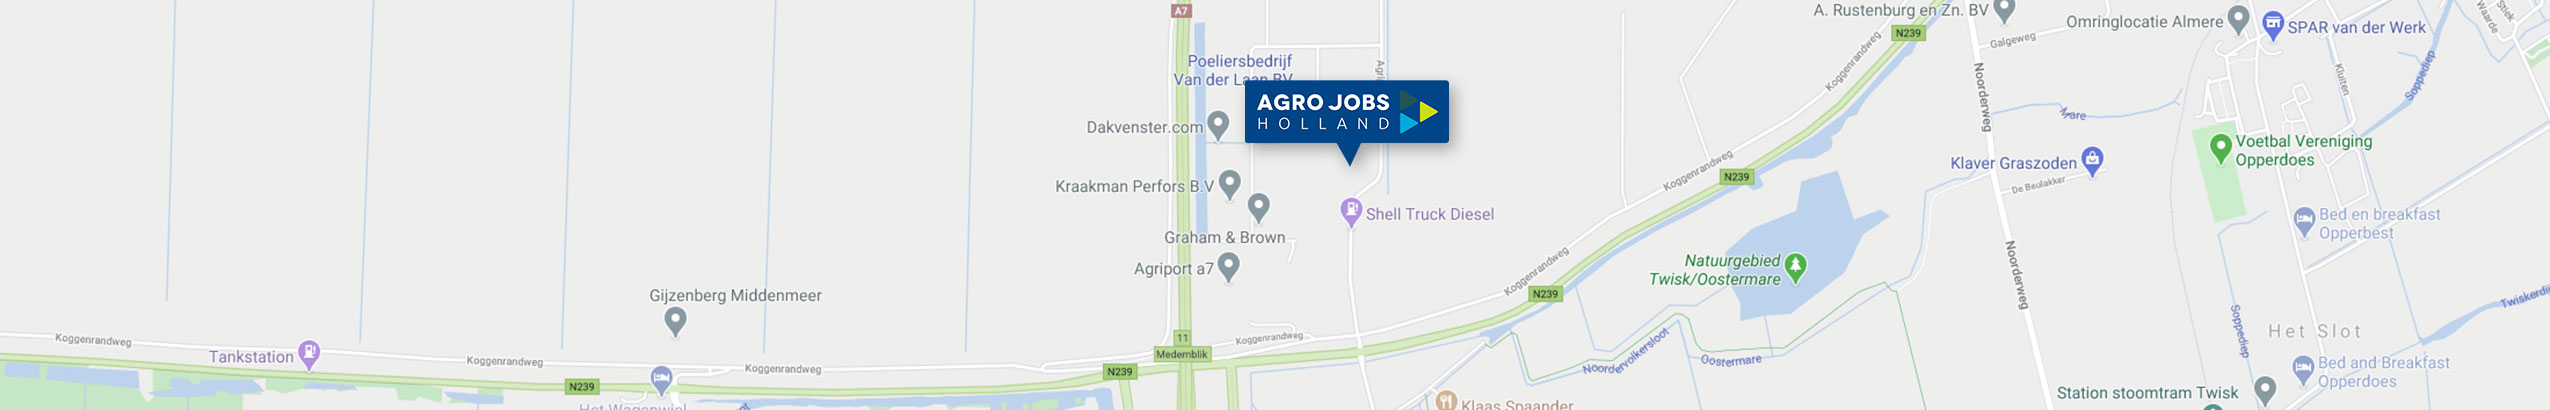 Agro-Jobs-Google-Maps RO